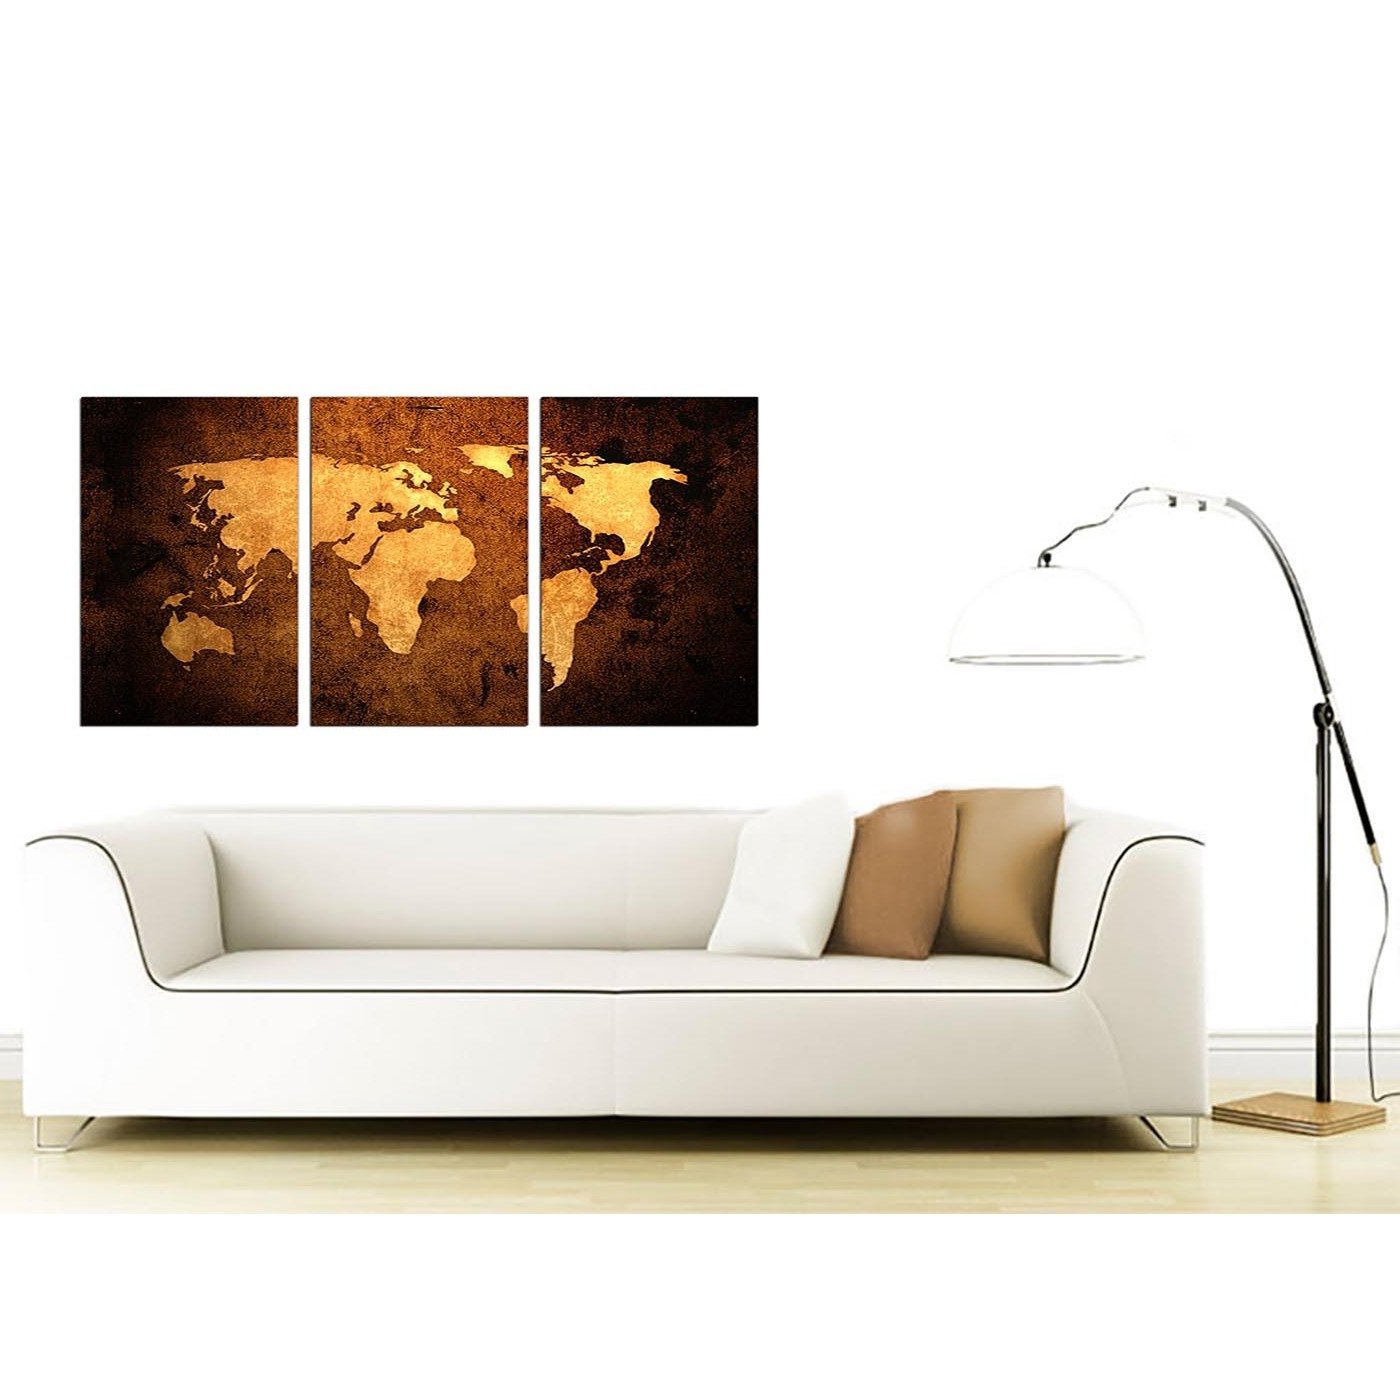 Favorite Wall Art In Vintage World Map Canvas Wall Art Set Of 3 For Your Bedroom (View 11 of 15)